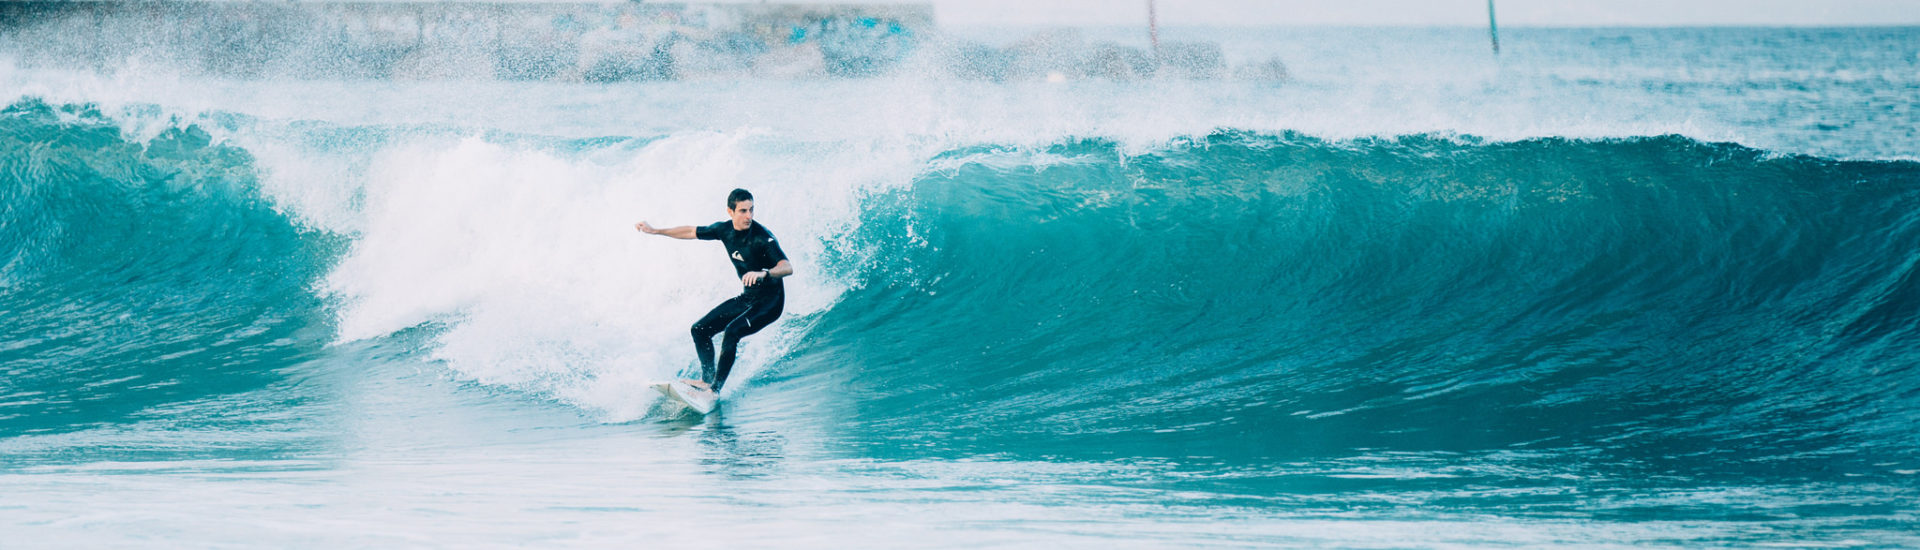 A Surfer in Barcelona by Filly Campbell   Flickr